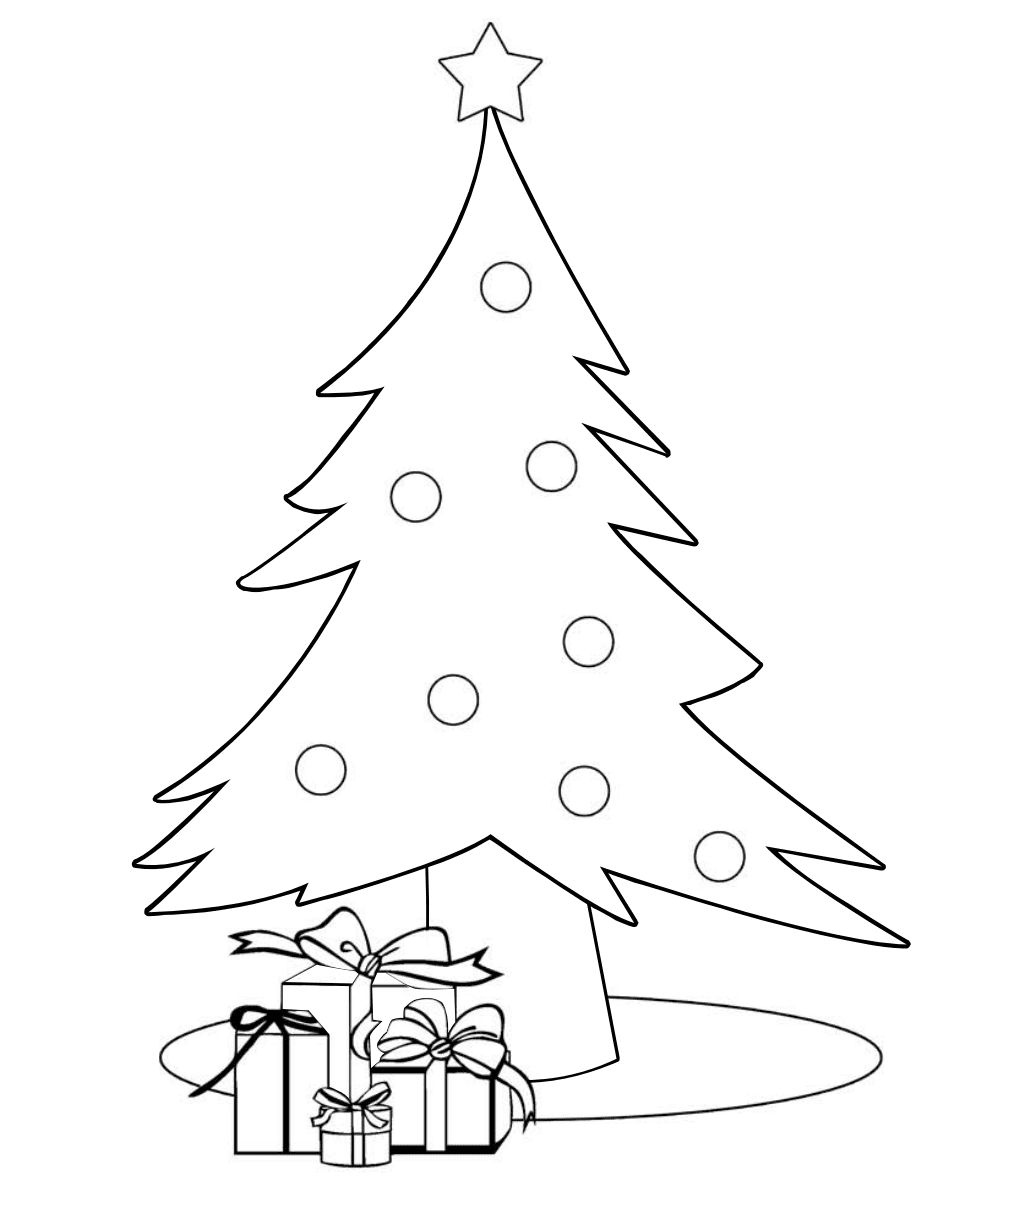 hight resolution of 13 Printable Christmas Coloring Pages for Kids   Parents